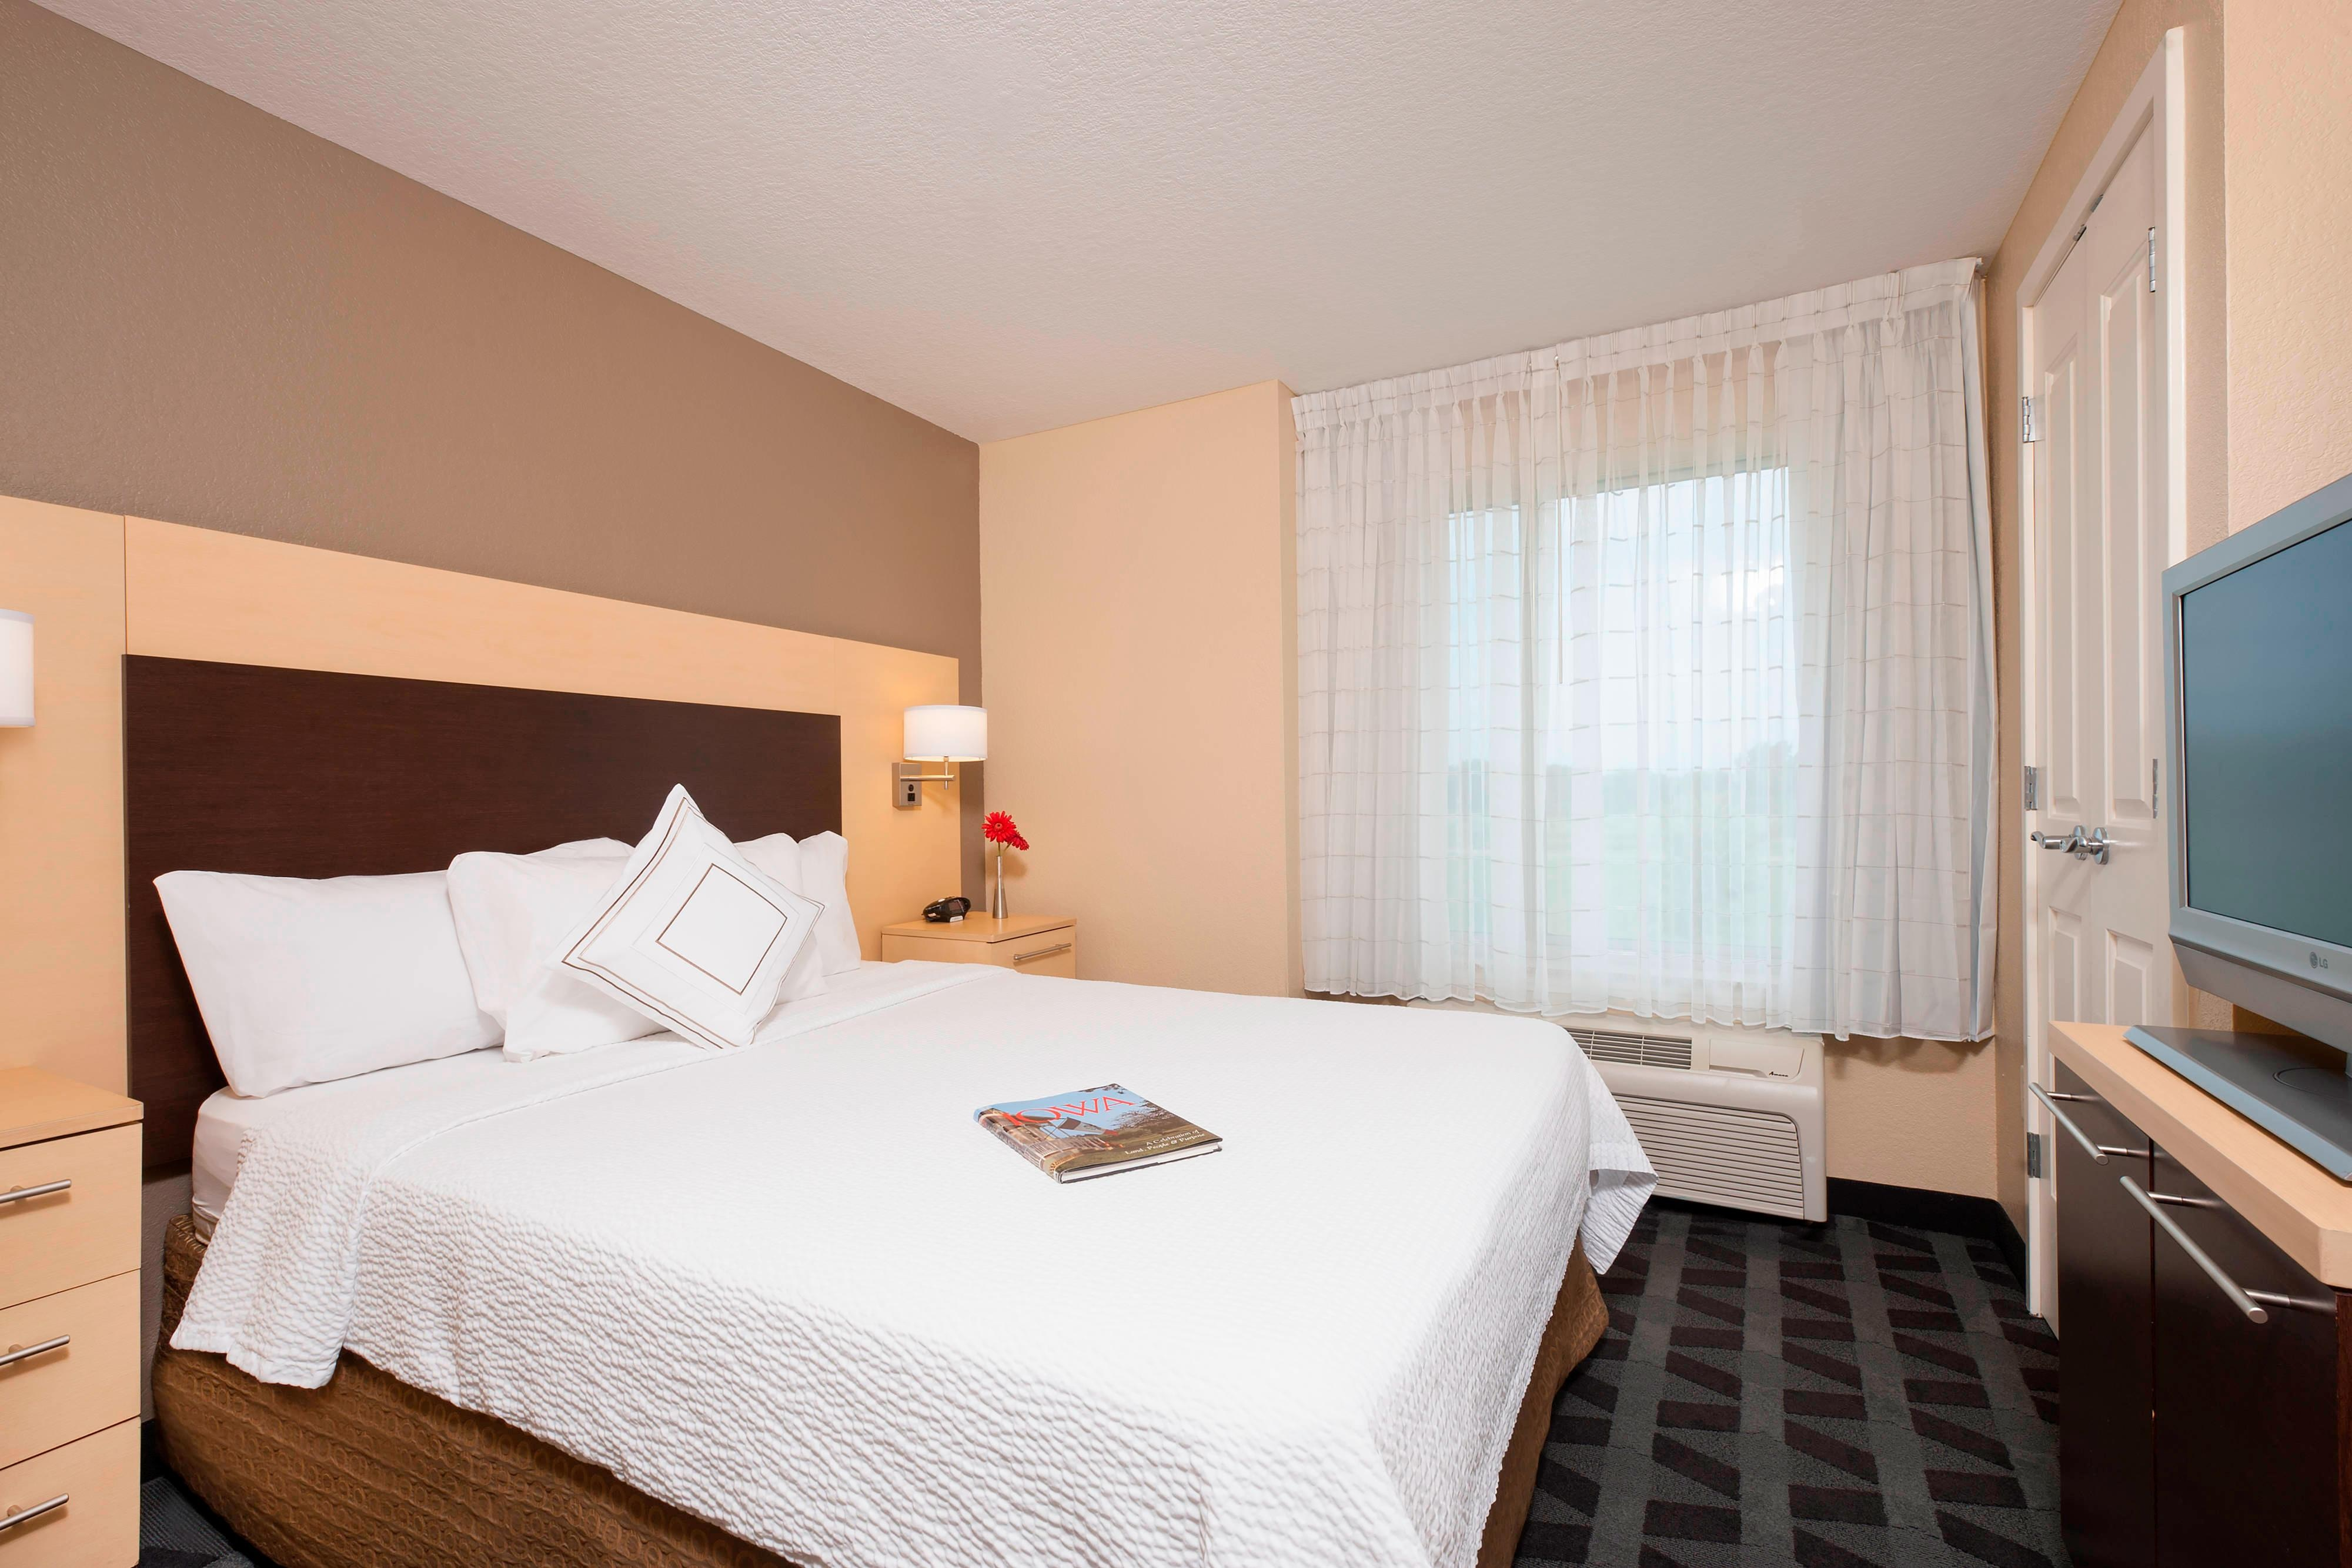 Suite at TownePlace Suites Urbandale, IA